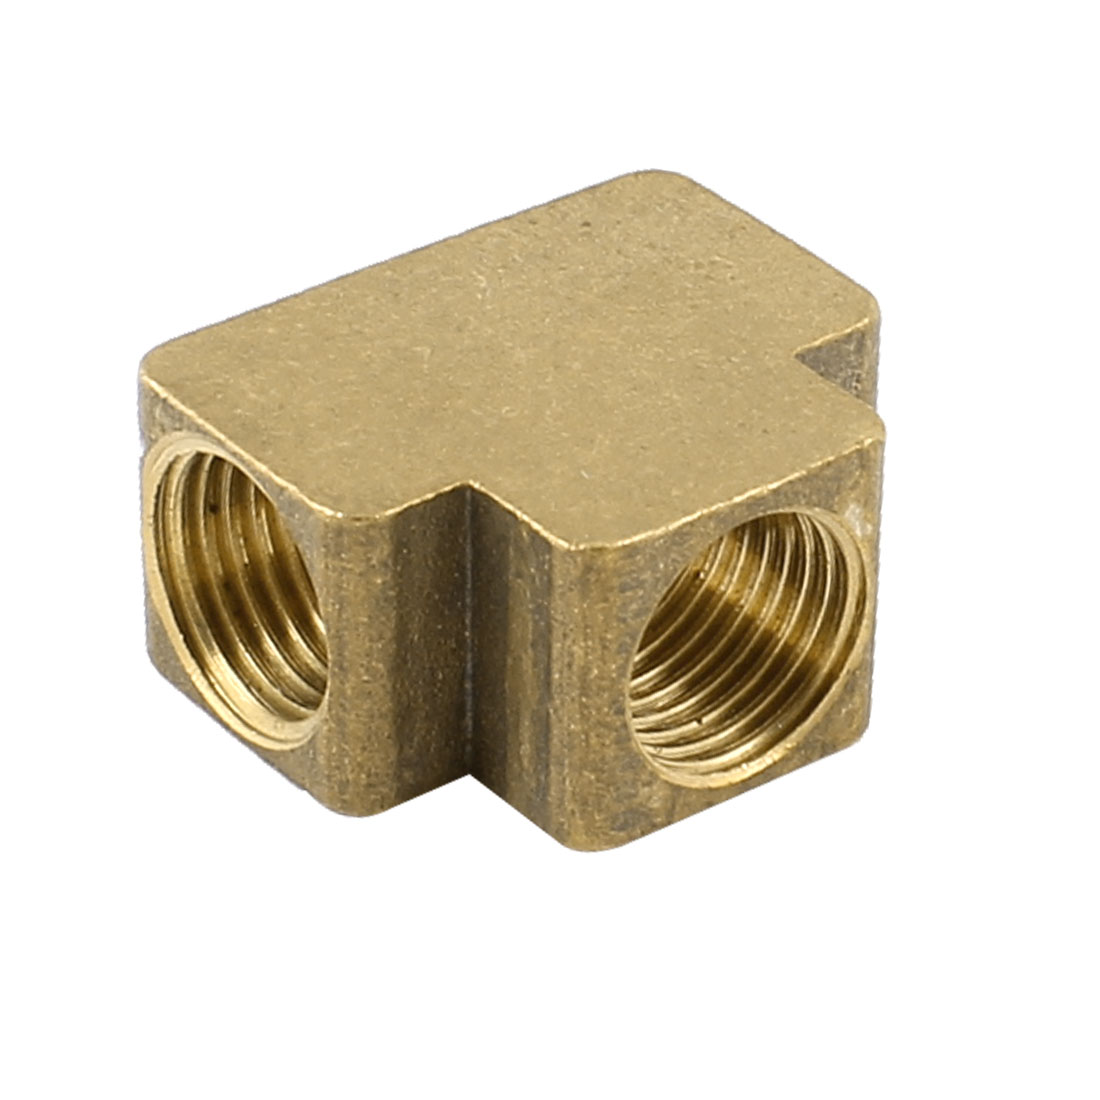 1/4PT Female Thread Brass 3 Ways Connector Water Pipe Fittings Coupler